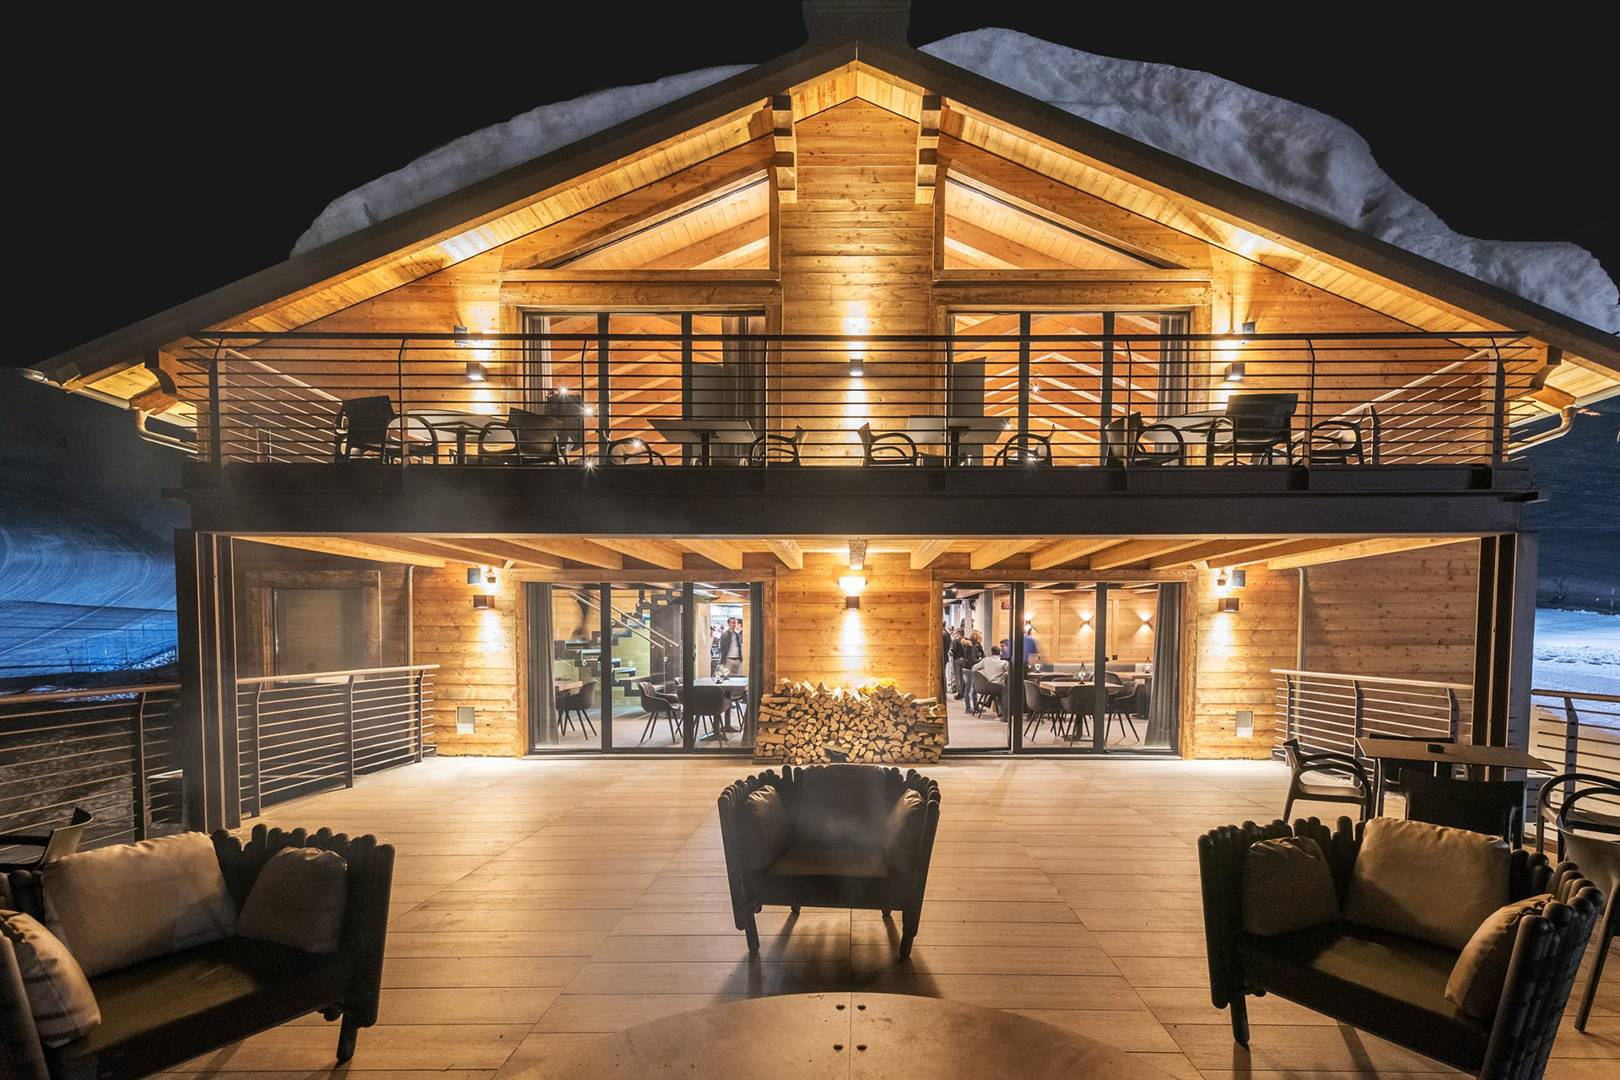 Five hot chalet openings to know about this season